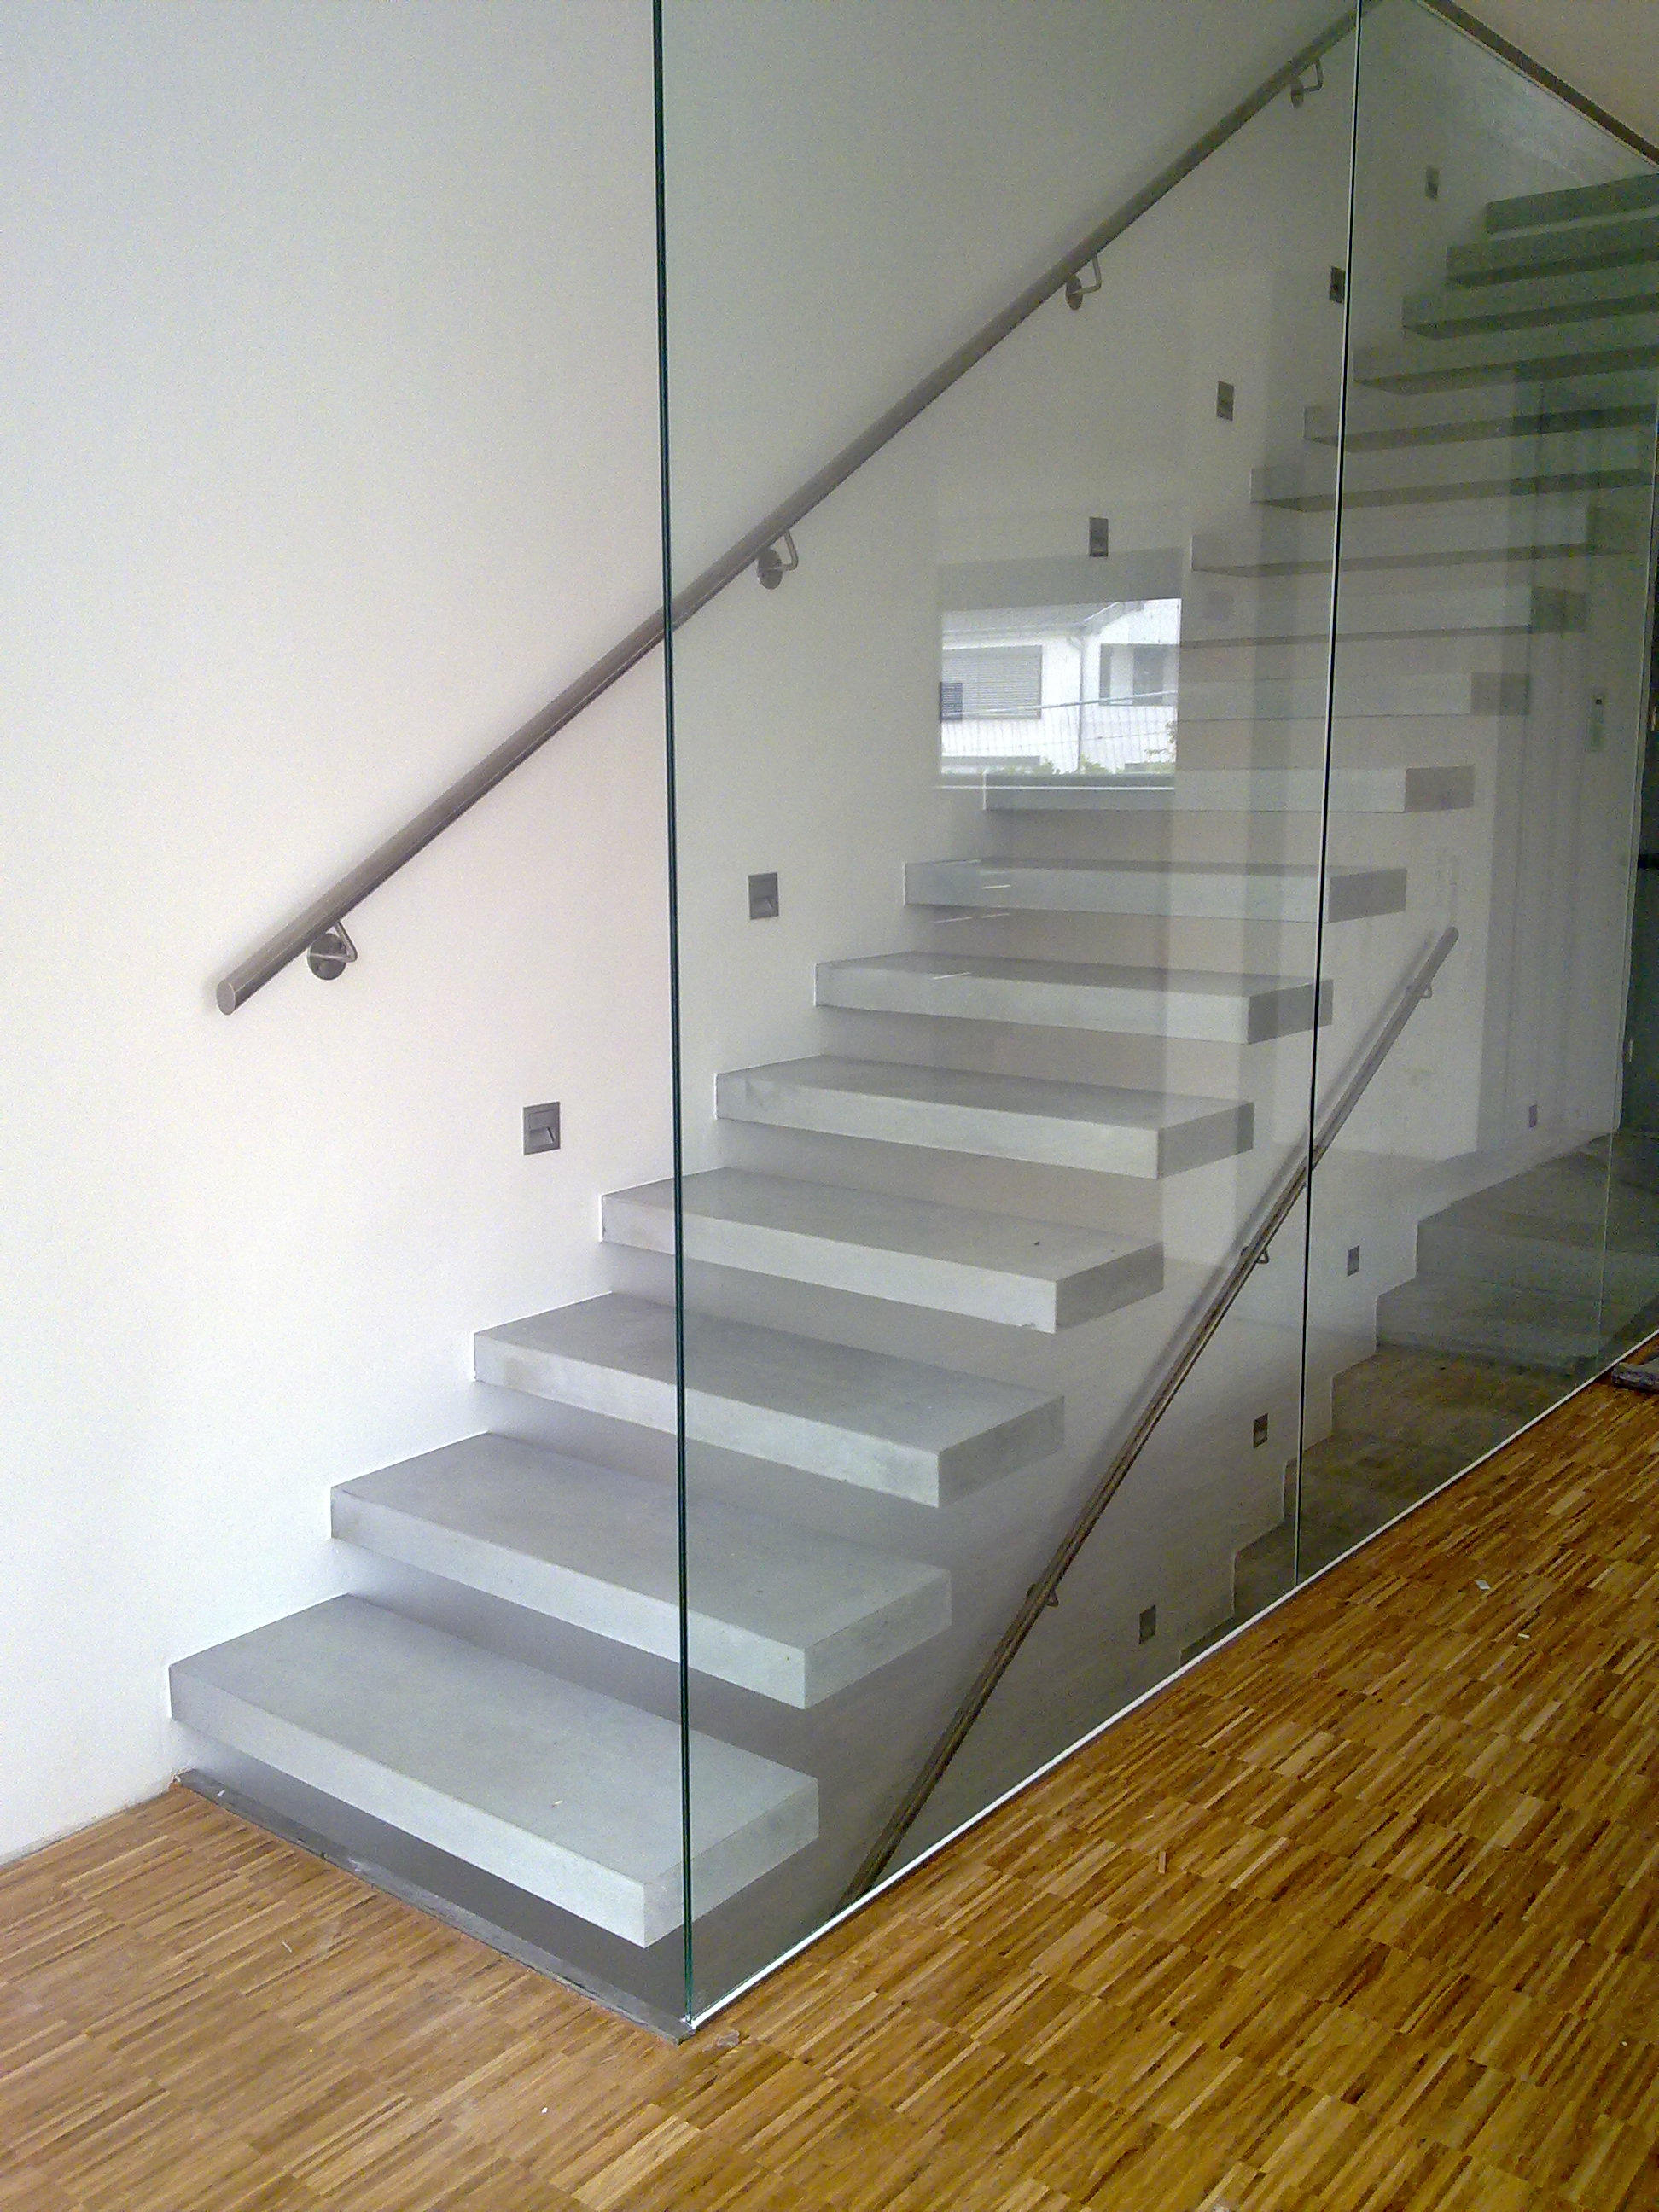 Attractive Cantilevered Stairs In Concrete By Siller Treppen | Concrete Stairs ...